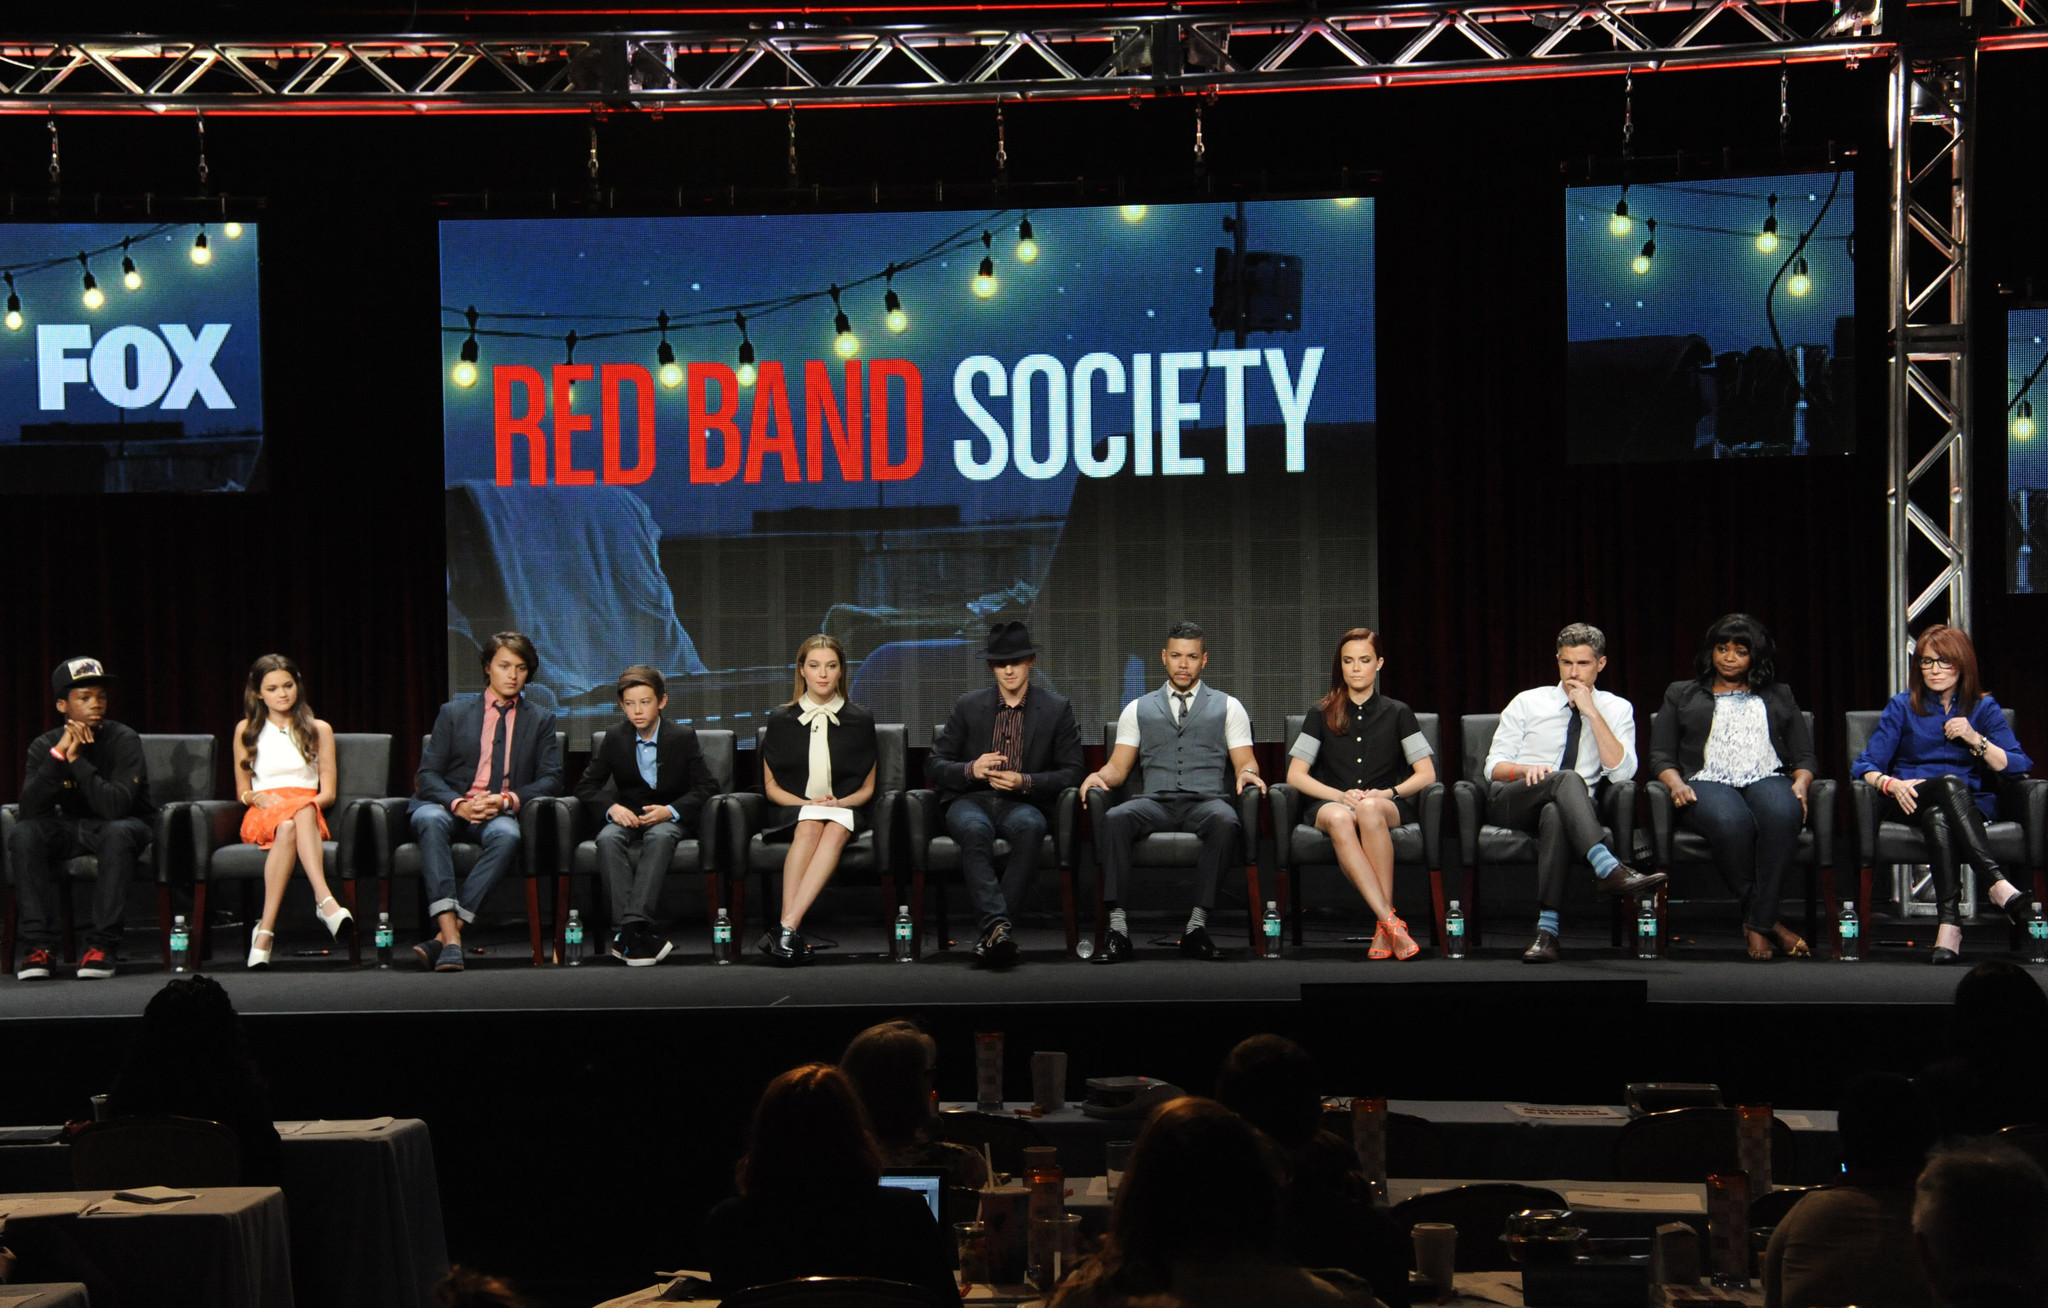 Red Band Society - Rotten Tomatoes